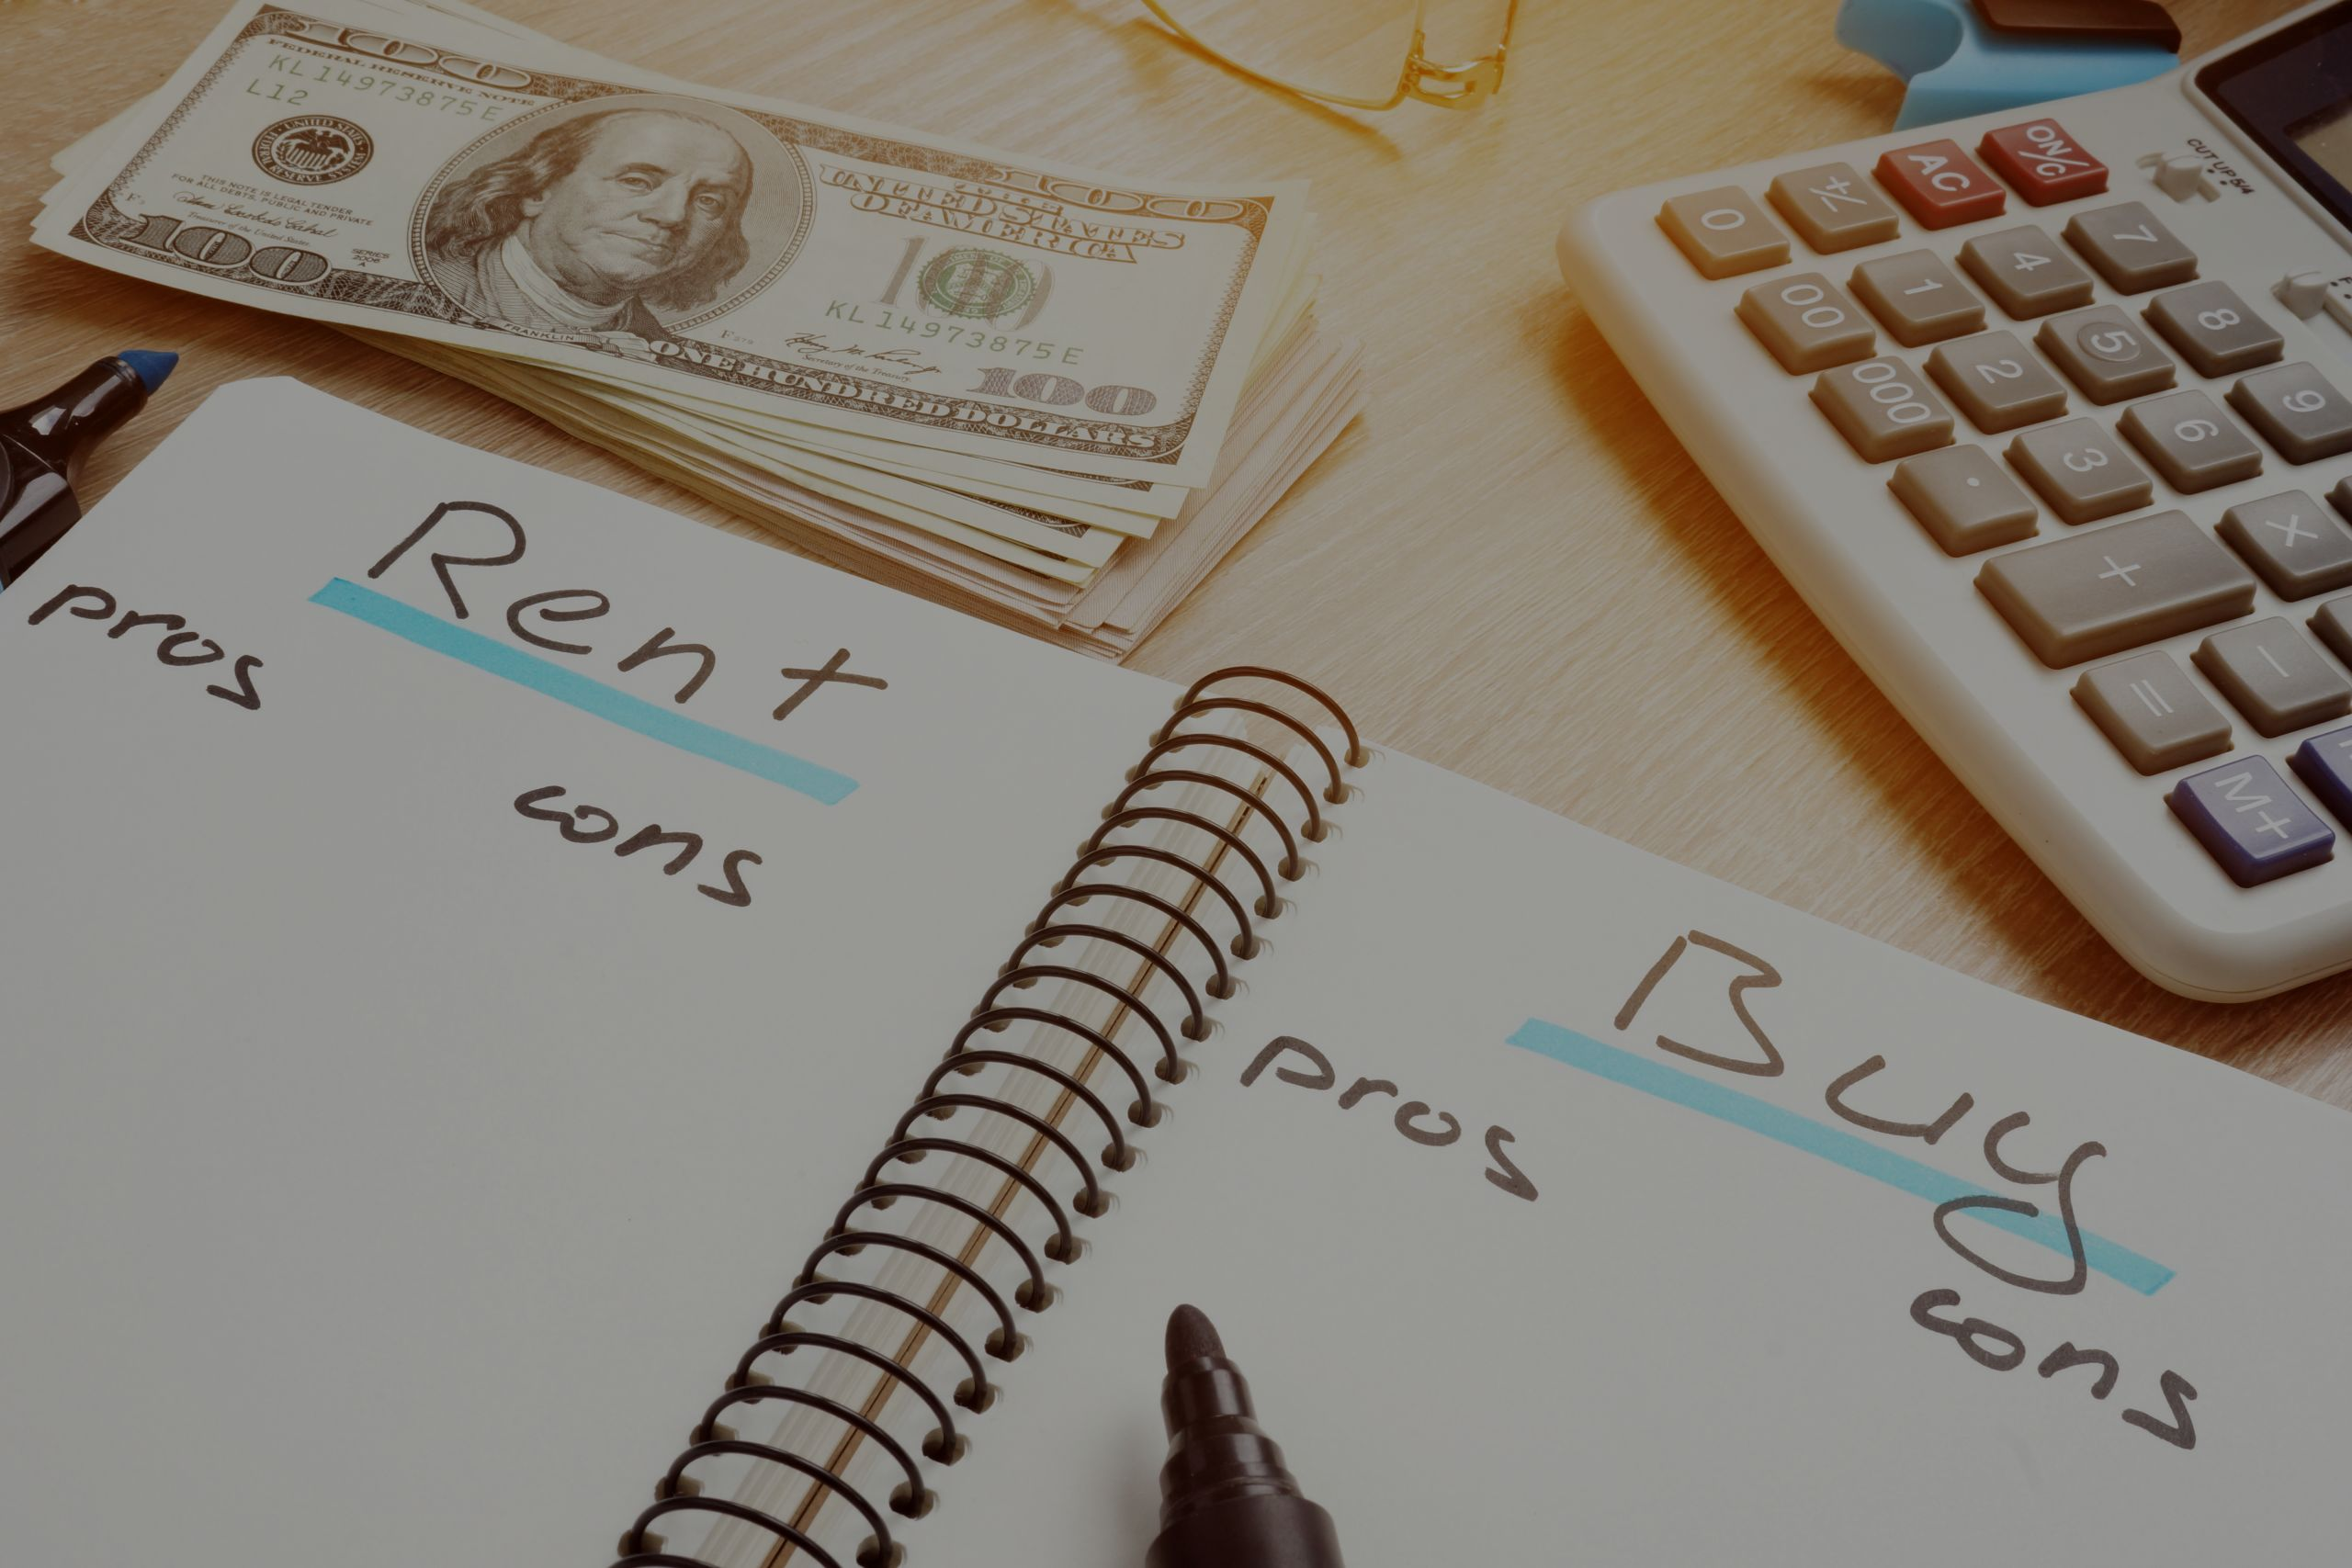 Rent vs. Owning a Home?